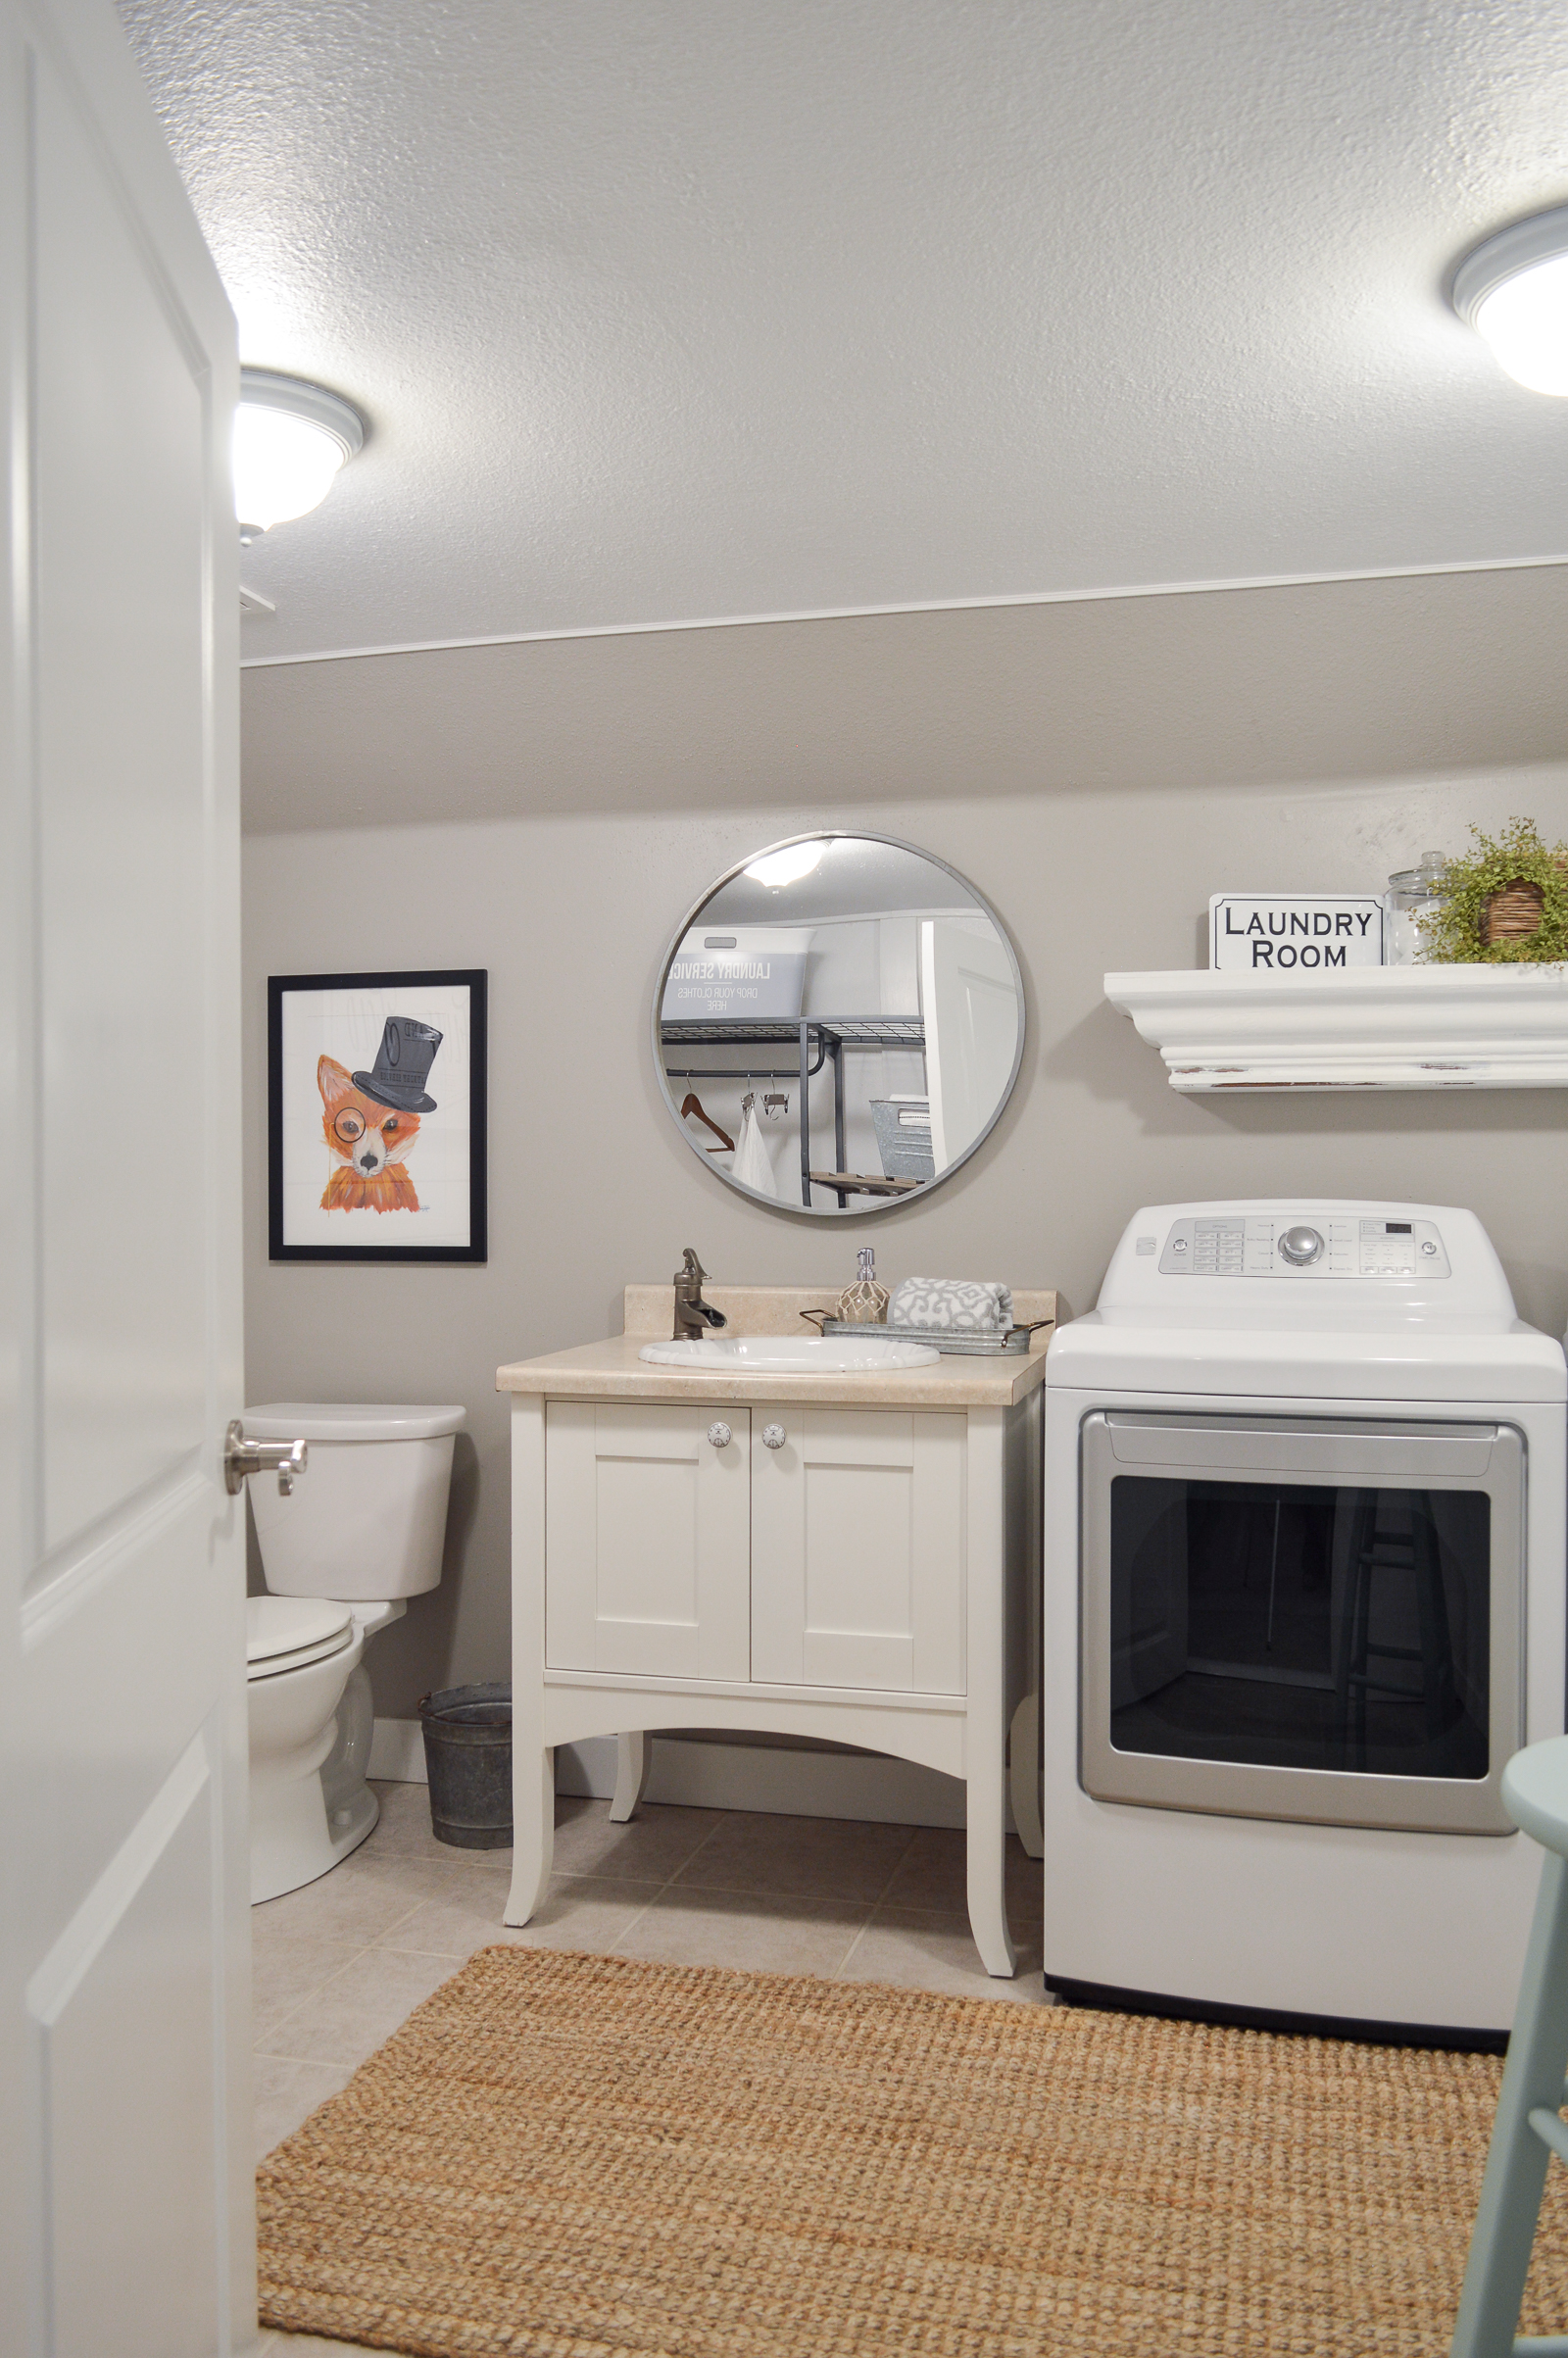 Small Space Combination Laundry Powder Bath Room Refresh - Simple, Organized Cottage Farmhouse Makeover with affordable pieces from the Better Homes & Gardens line at Walmart #sponsored | Details and sources www.foxhollowcottage.com